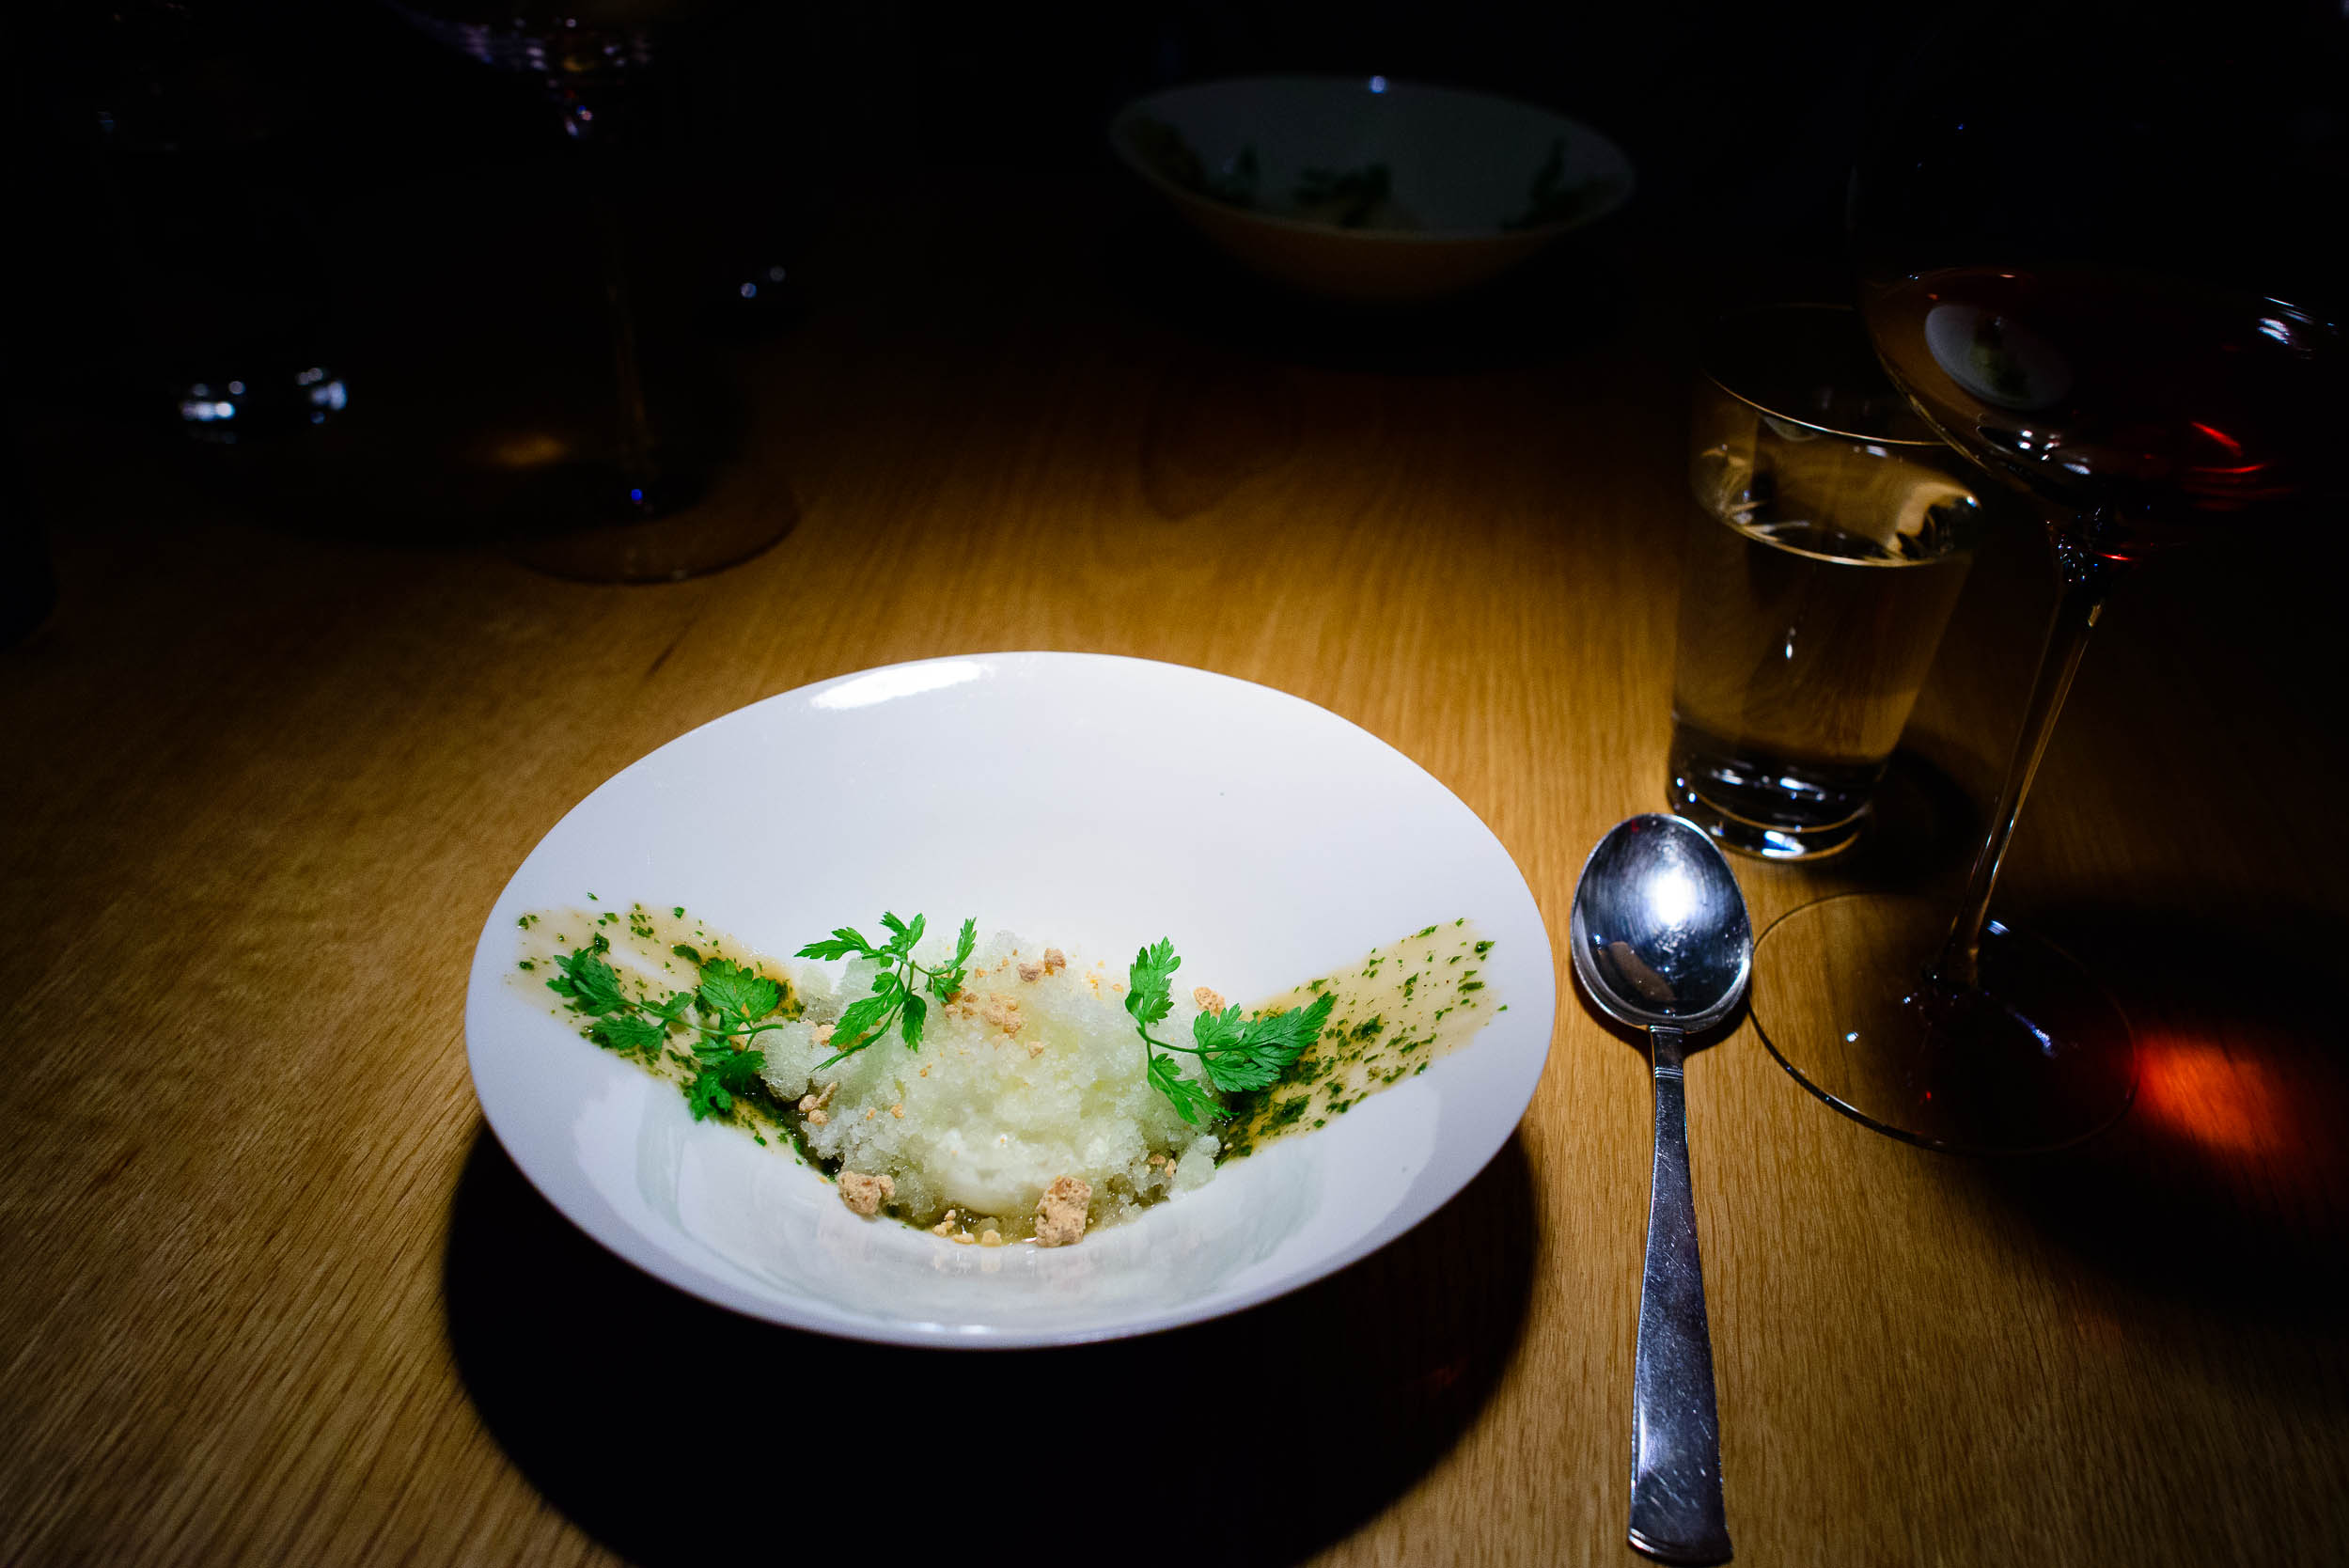 Puree of polypodium fern and sweet cicely with a white chocolate